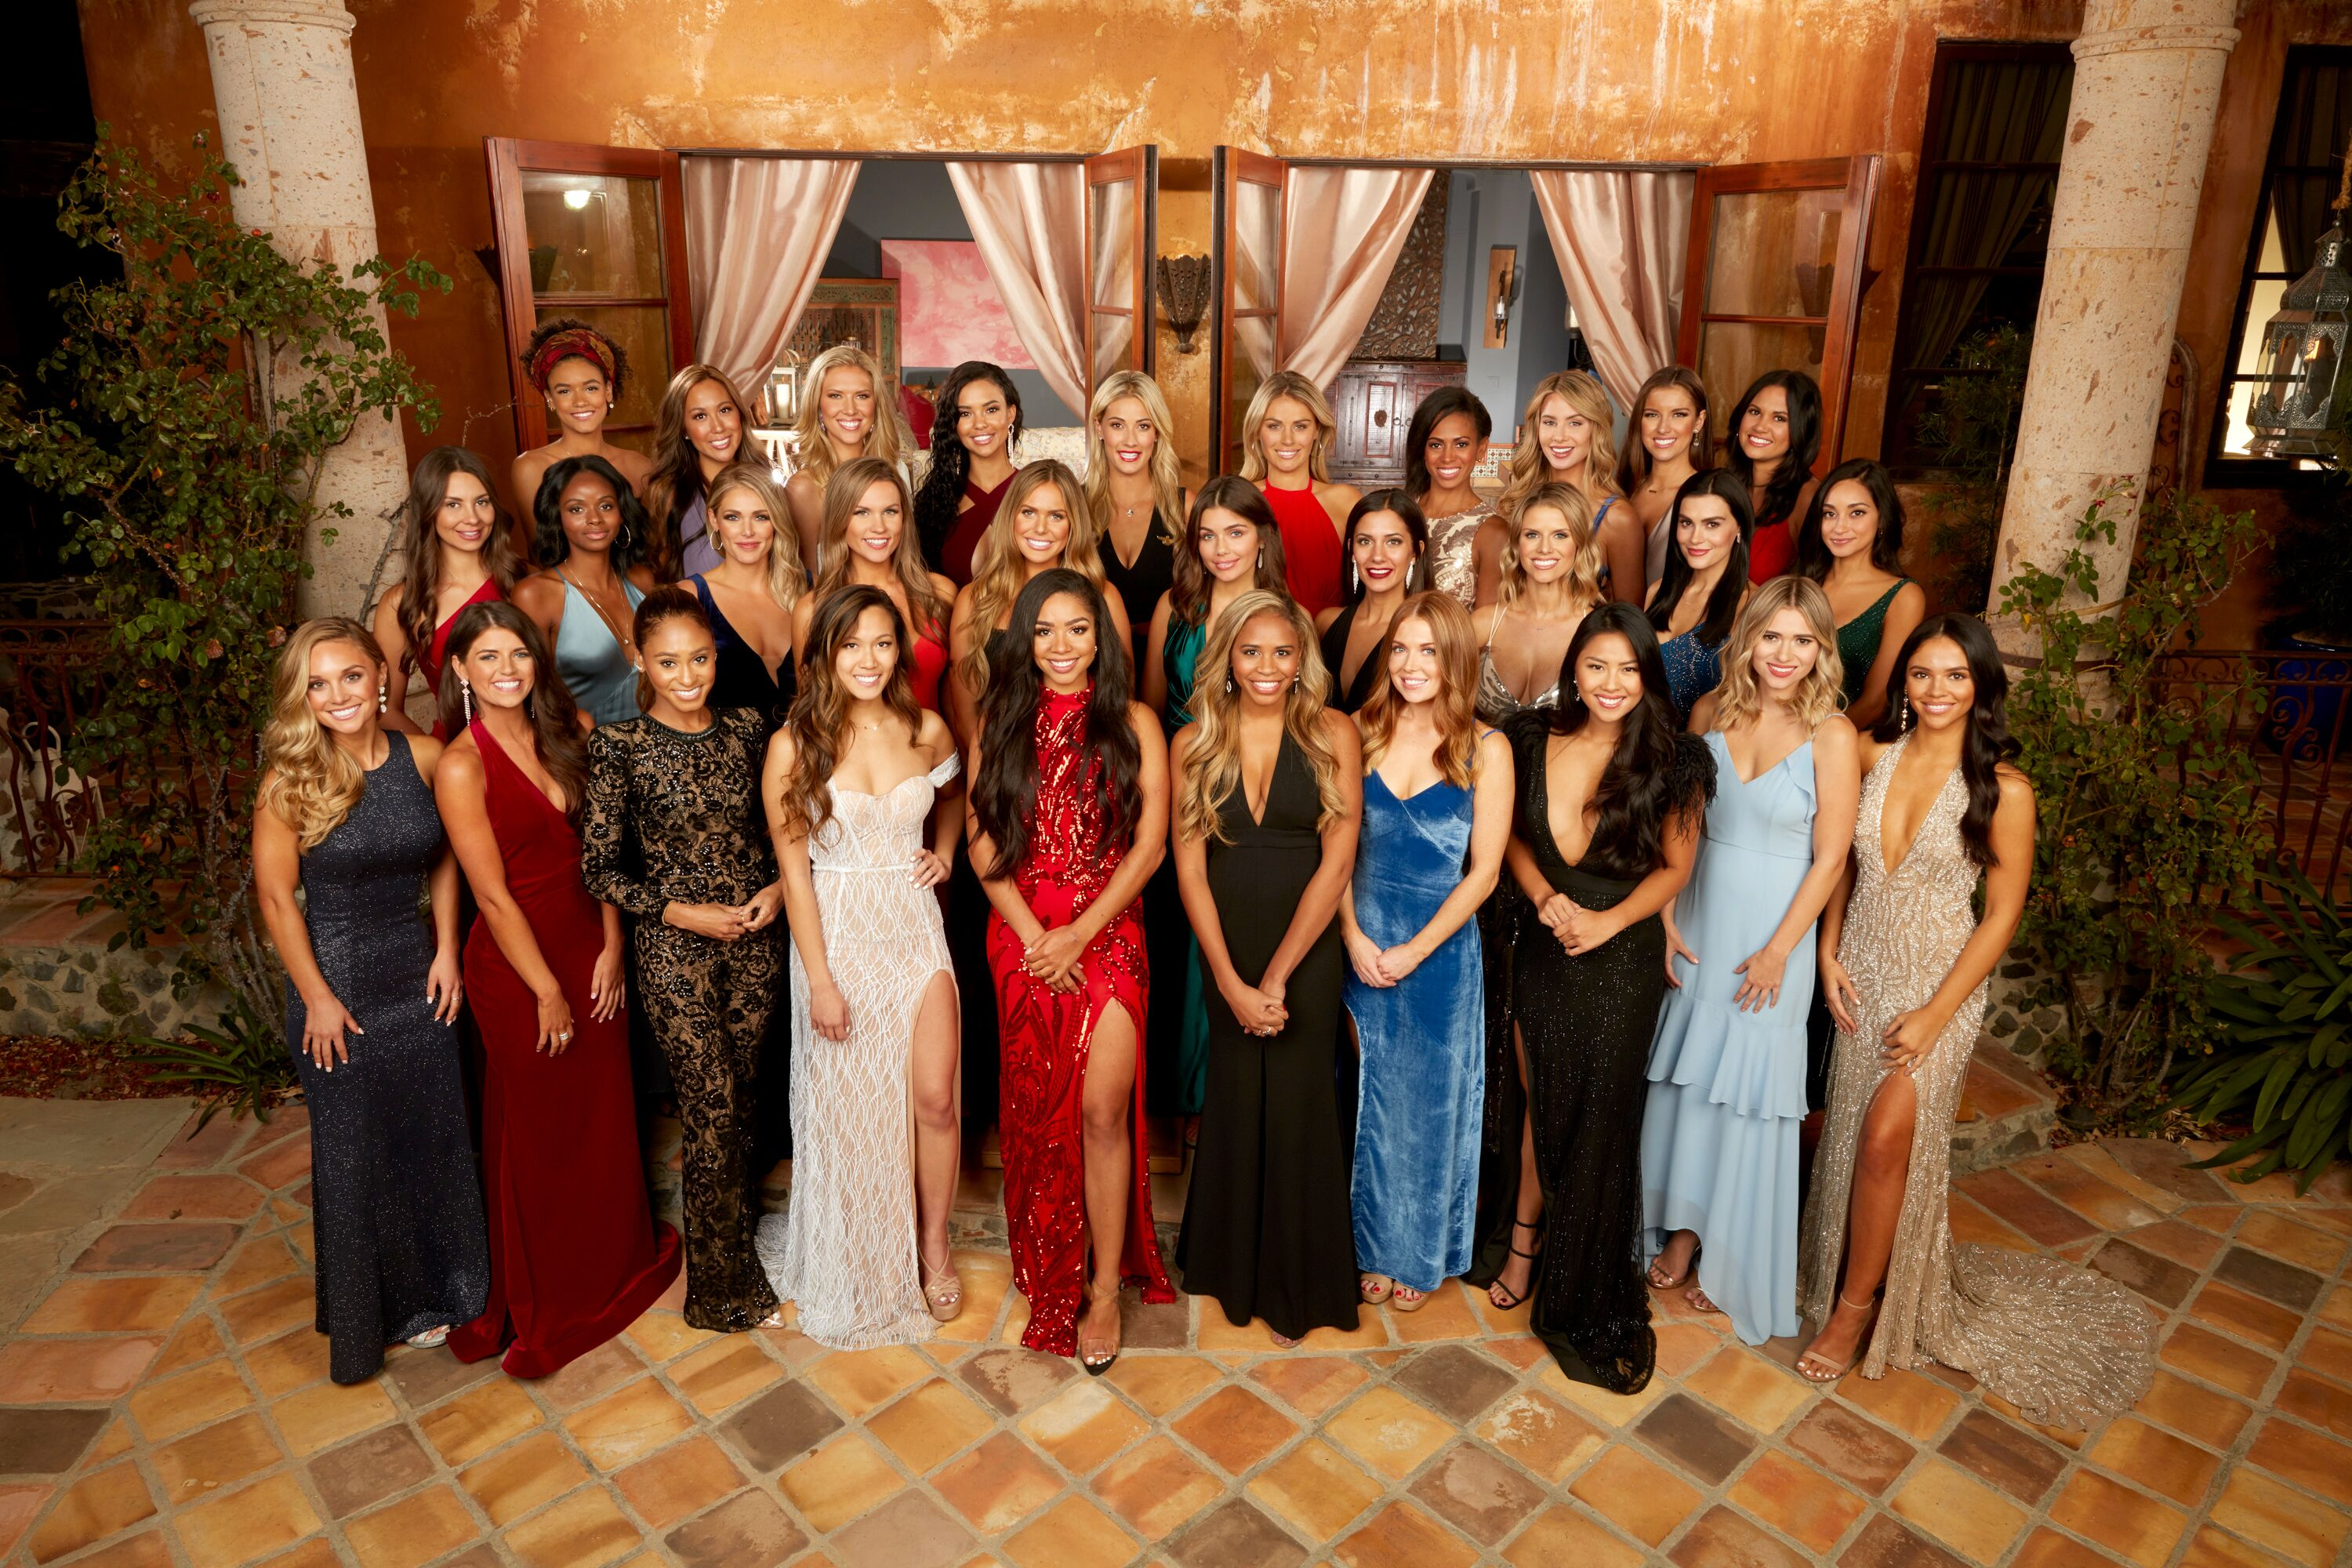 Who are the top contenders for the next Bachelorette?